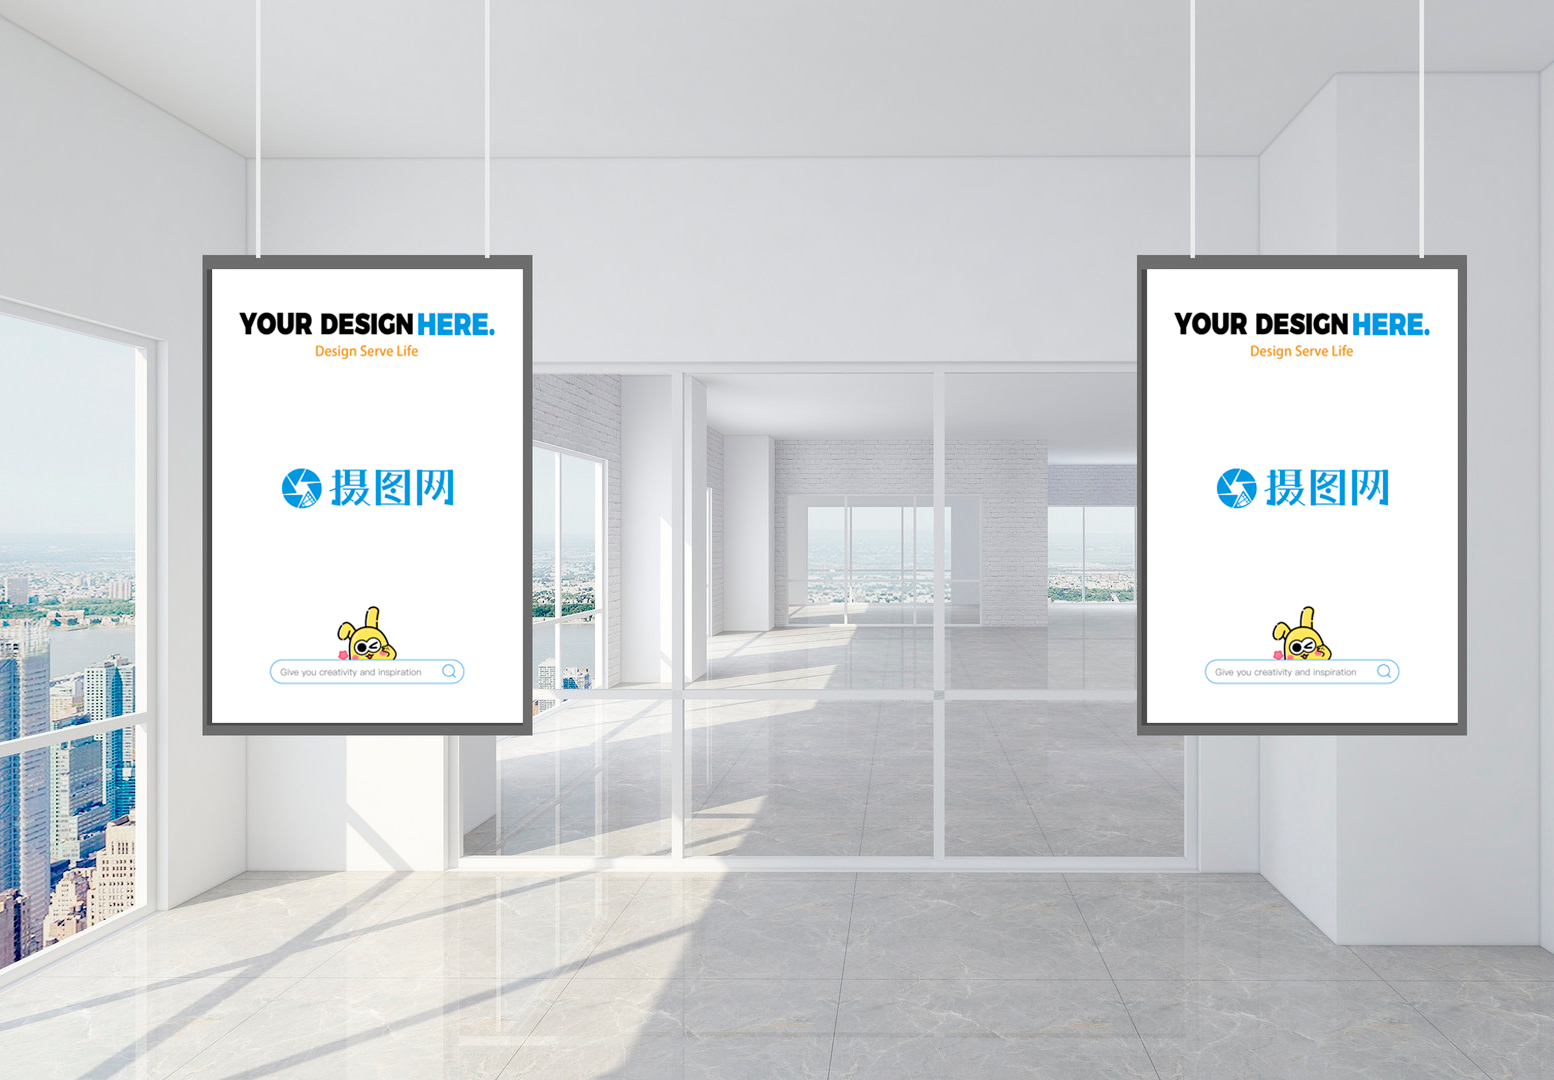 Exhibition Booth Mockup Free Download : Exhibition booth mockup template images exhibition booth mockup